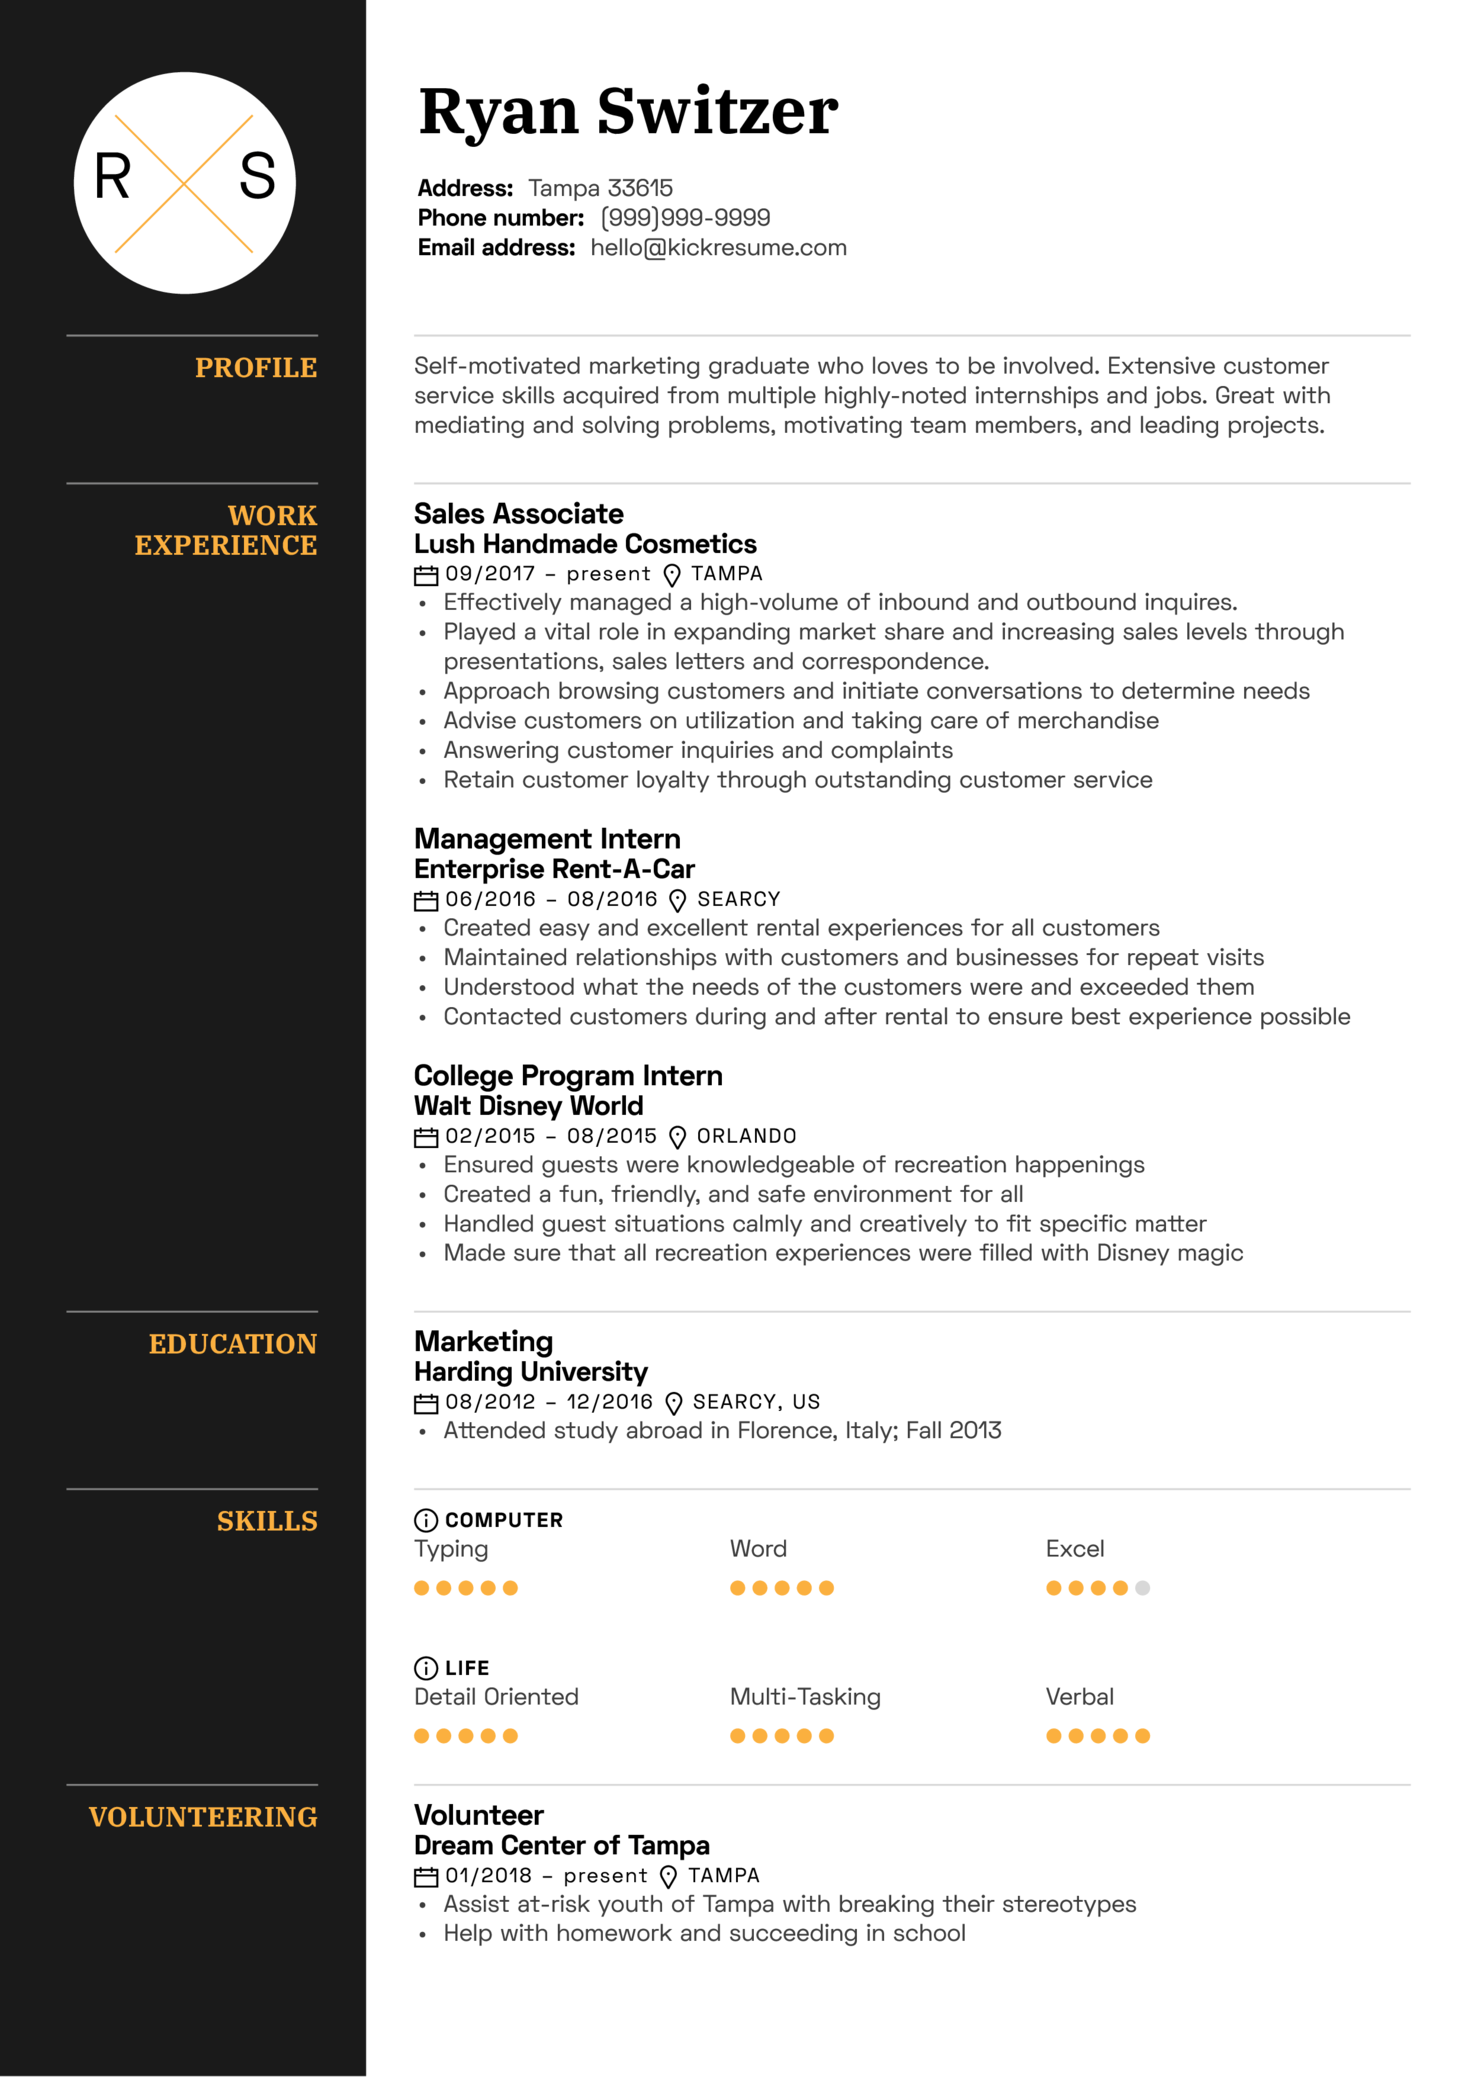 Sales Associate Resume Template Kickresume